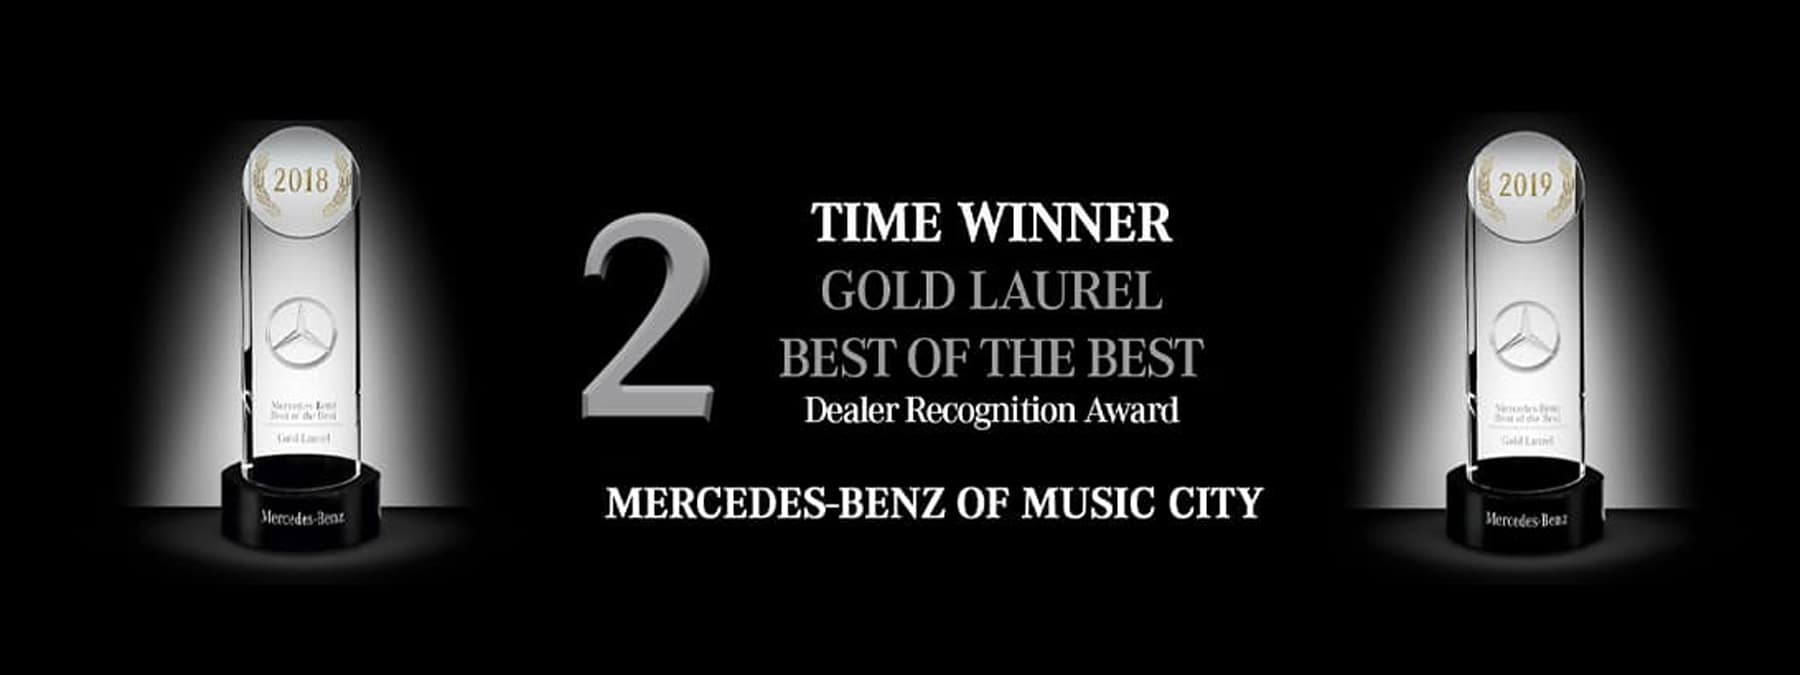 mbofmc 2 time best of the best winner